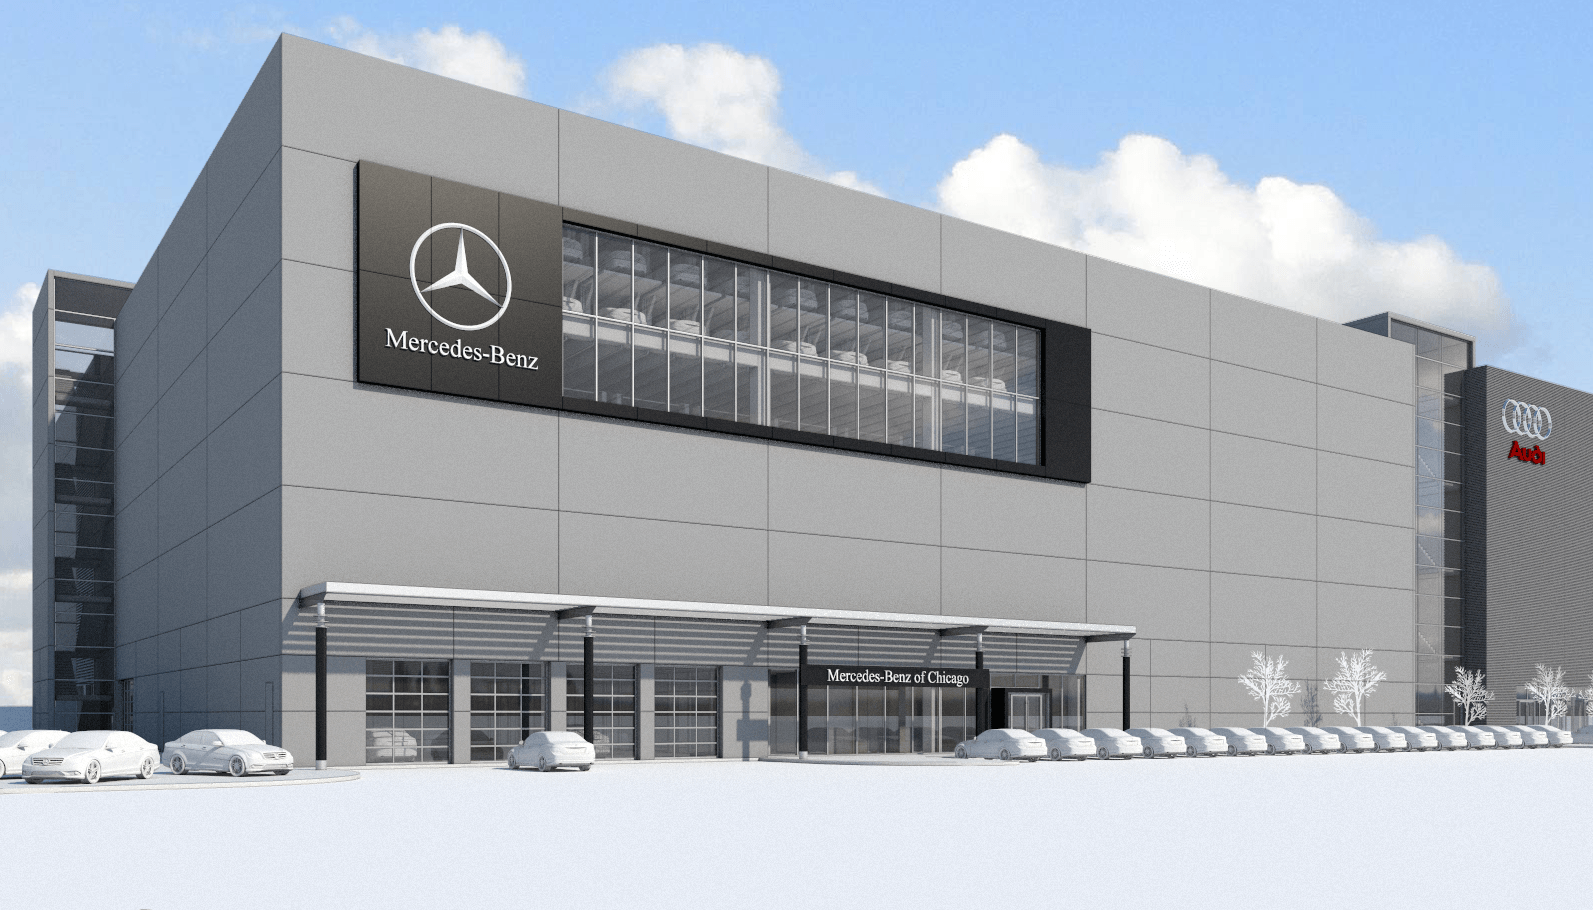 A new era of service mercedes benz of chicago for Mercedes benz rockville centre service